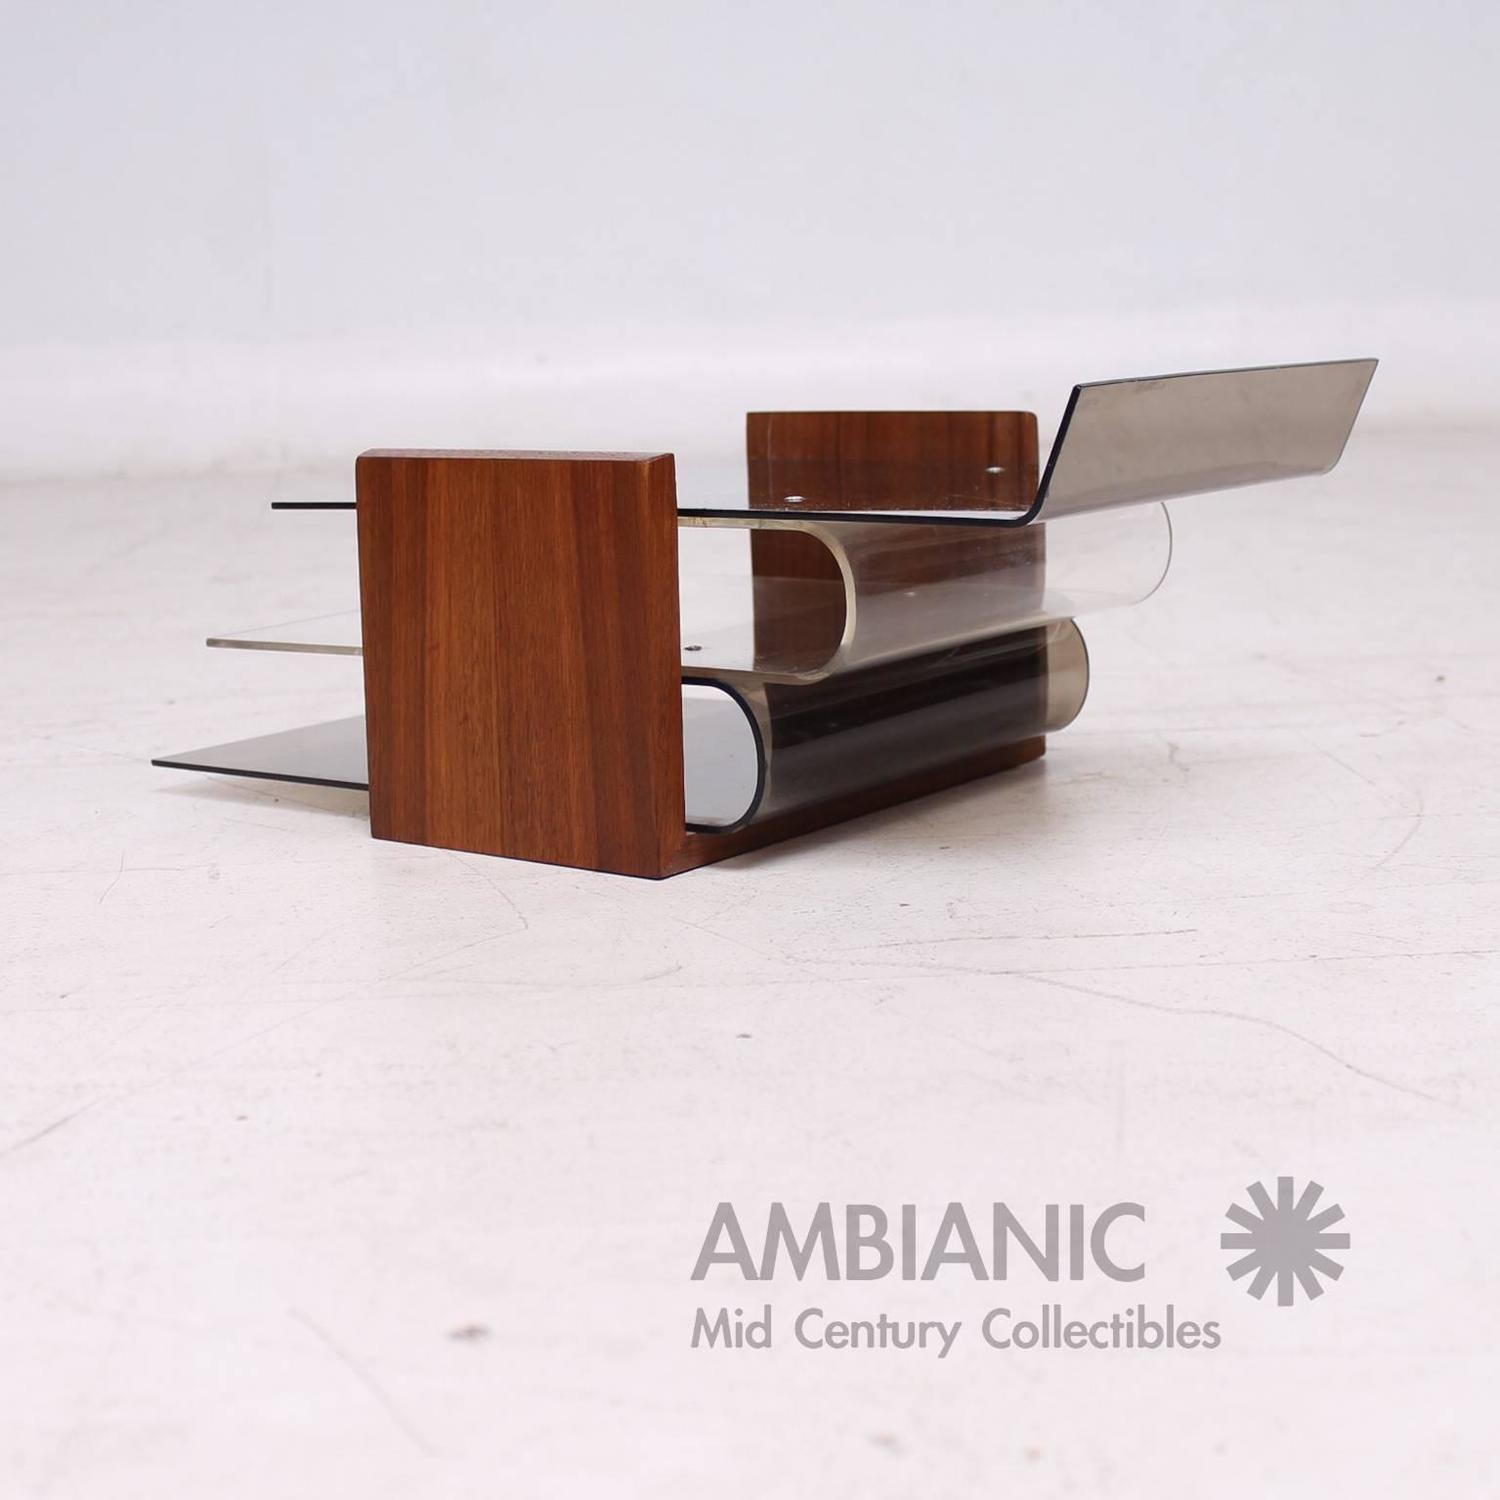 Mid century modern office tray eames nelson era desk for Mid modern period